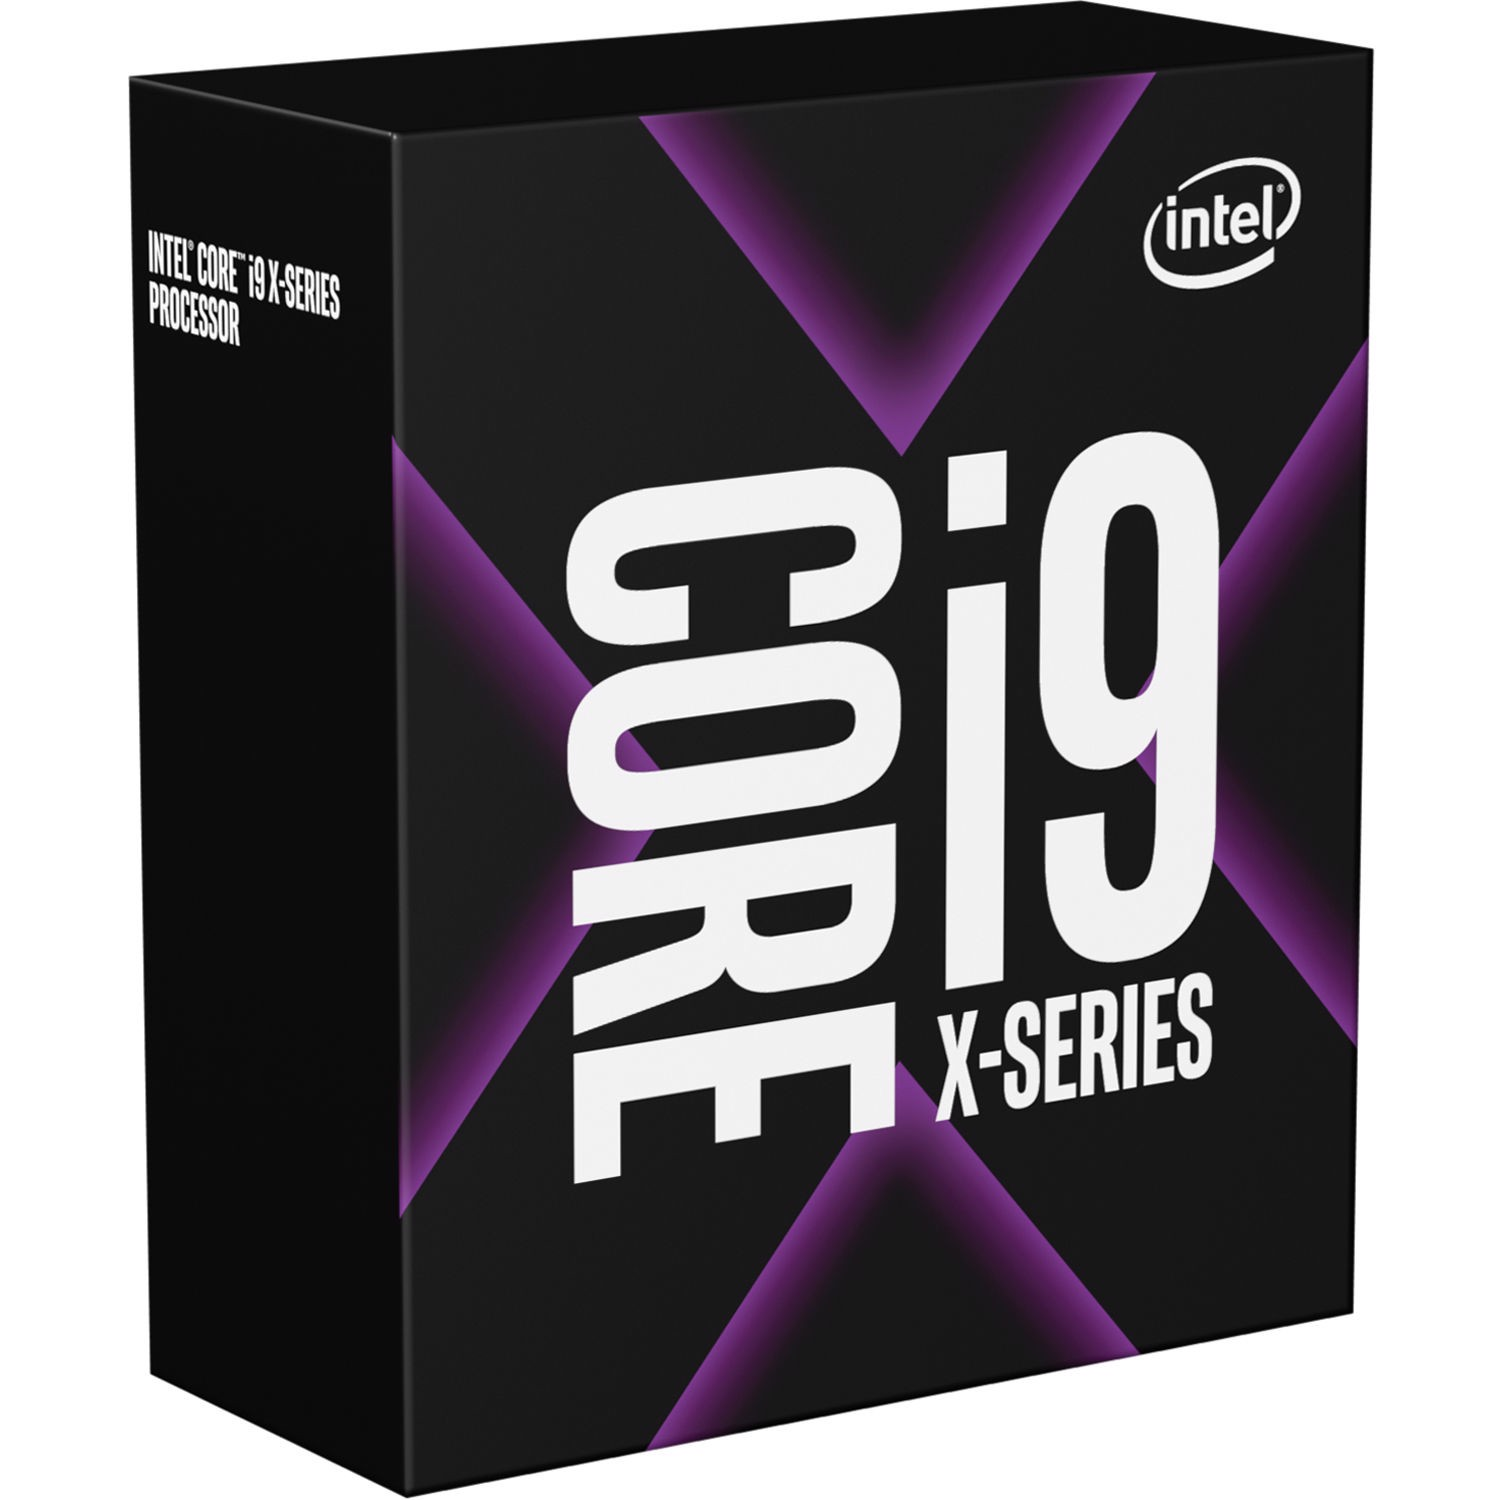 Intel Core I9-9900X 10C/20T 19.25M Cache Up to 4.5GHz Socket 2066